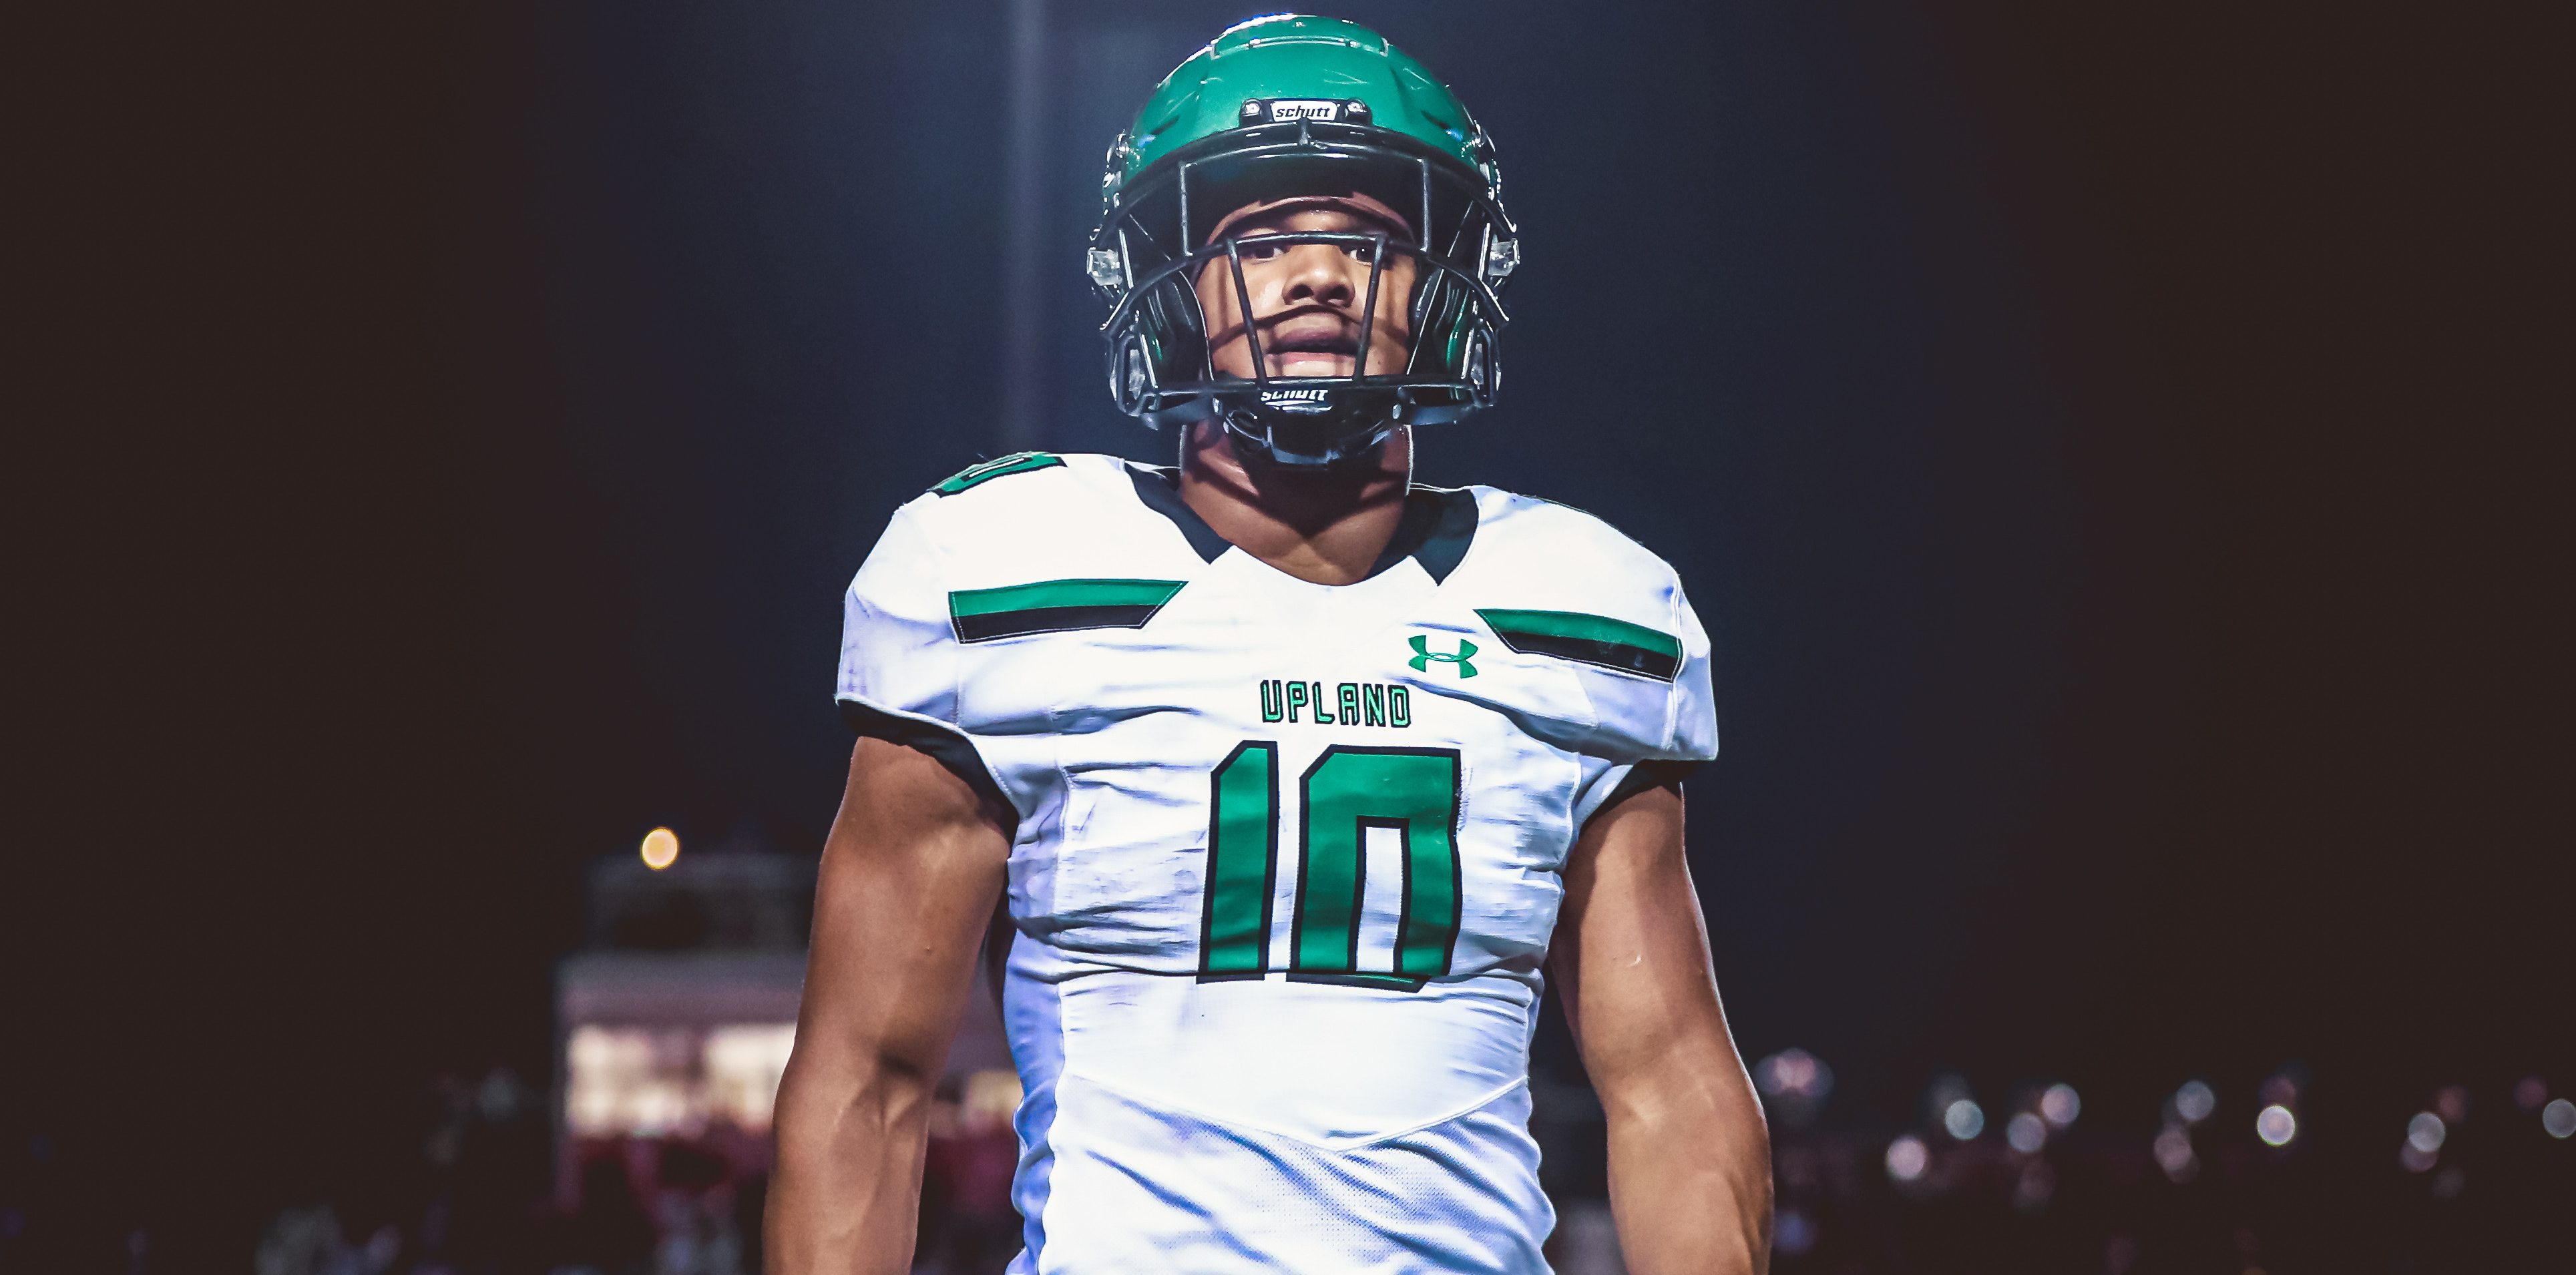 2019-20 ALL-USA High School Football Defensive Player of the Year: Justin Flowe, Upland